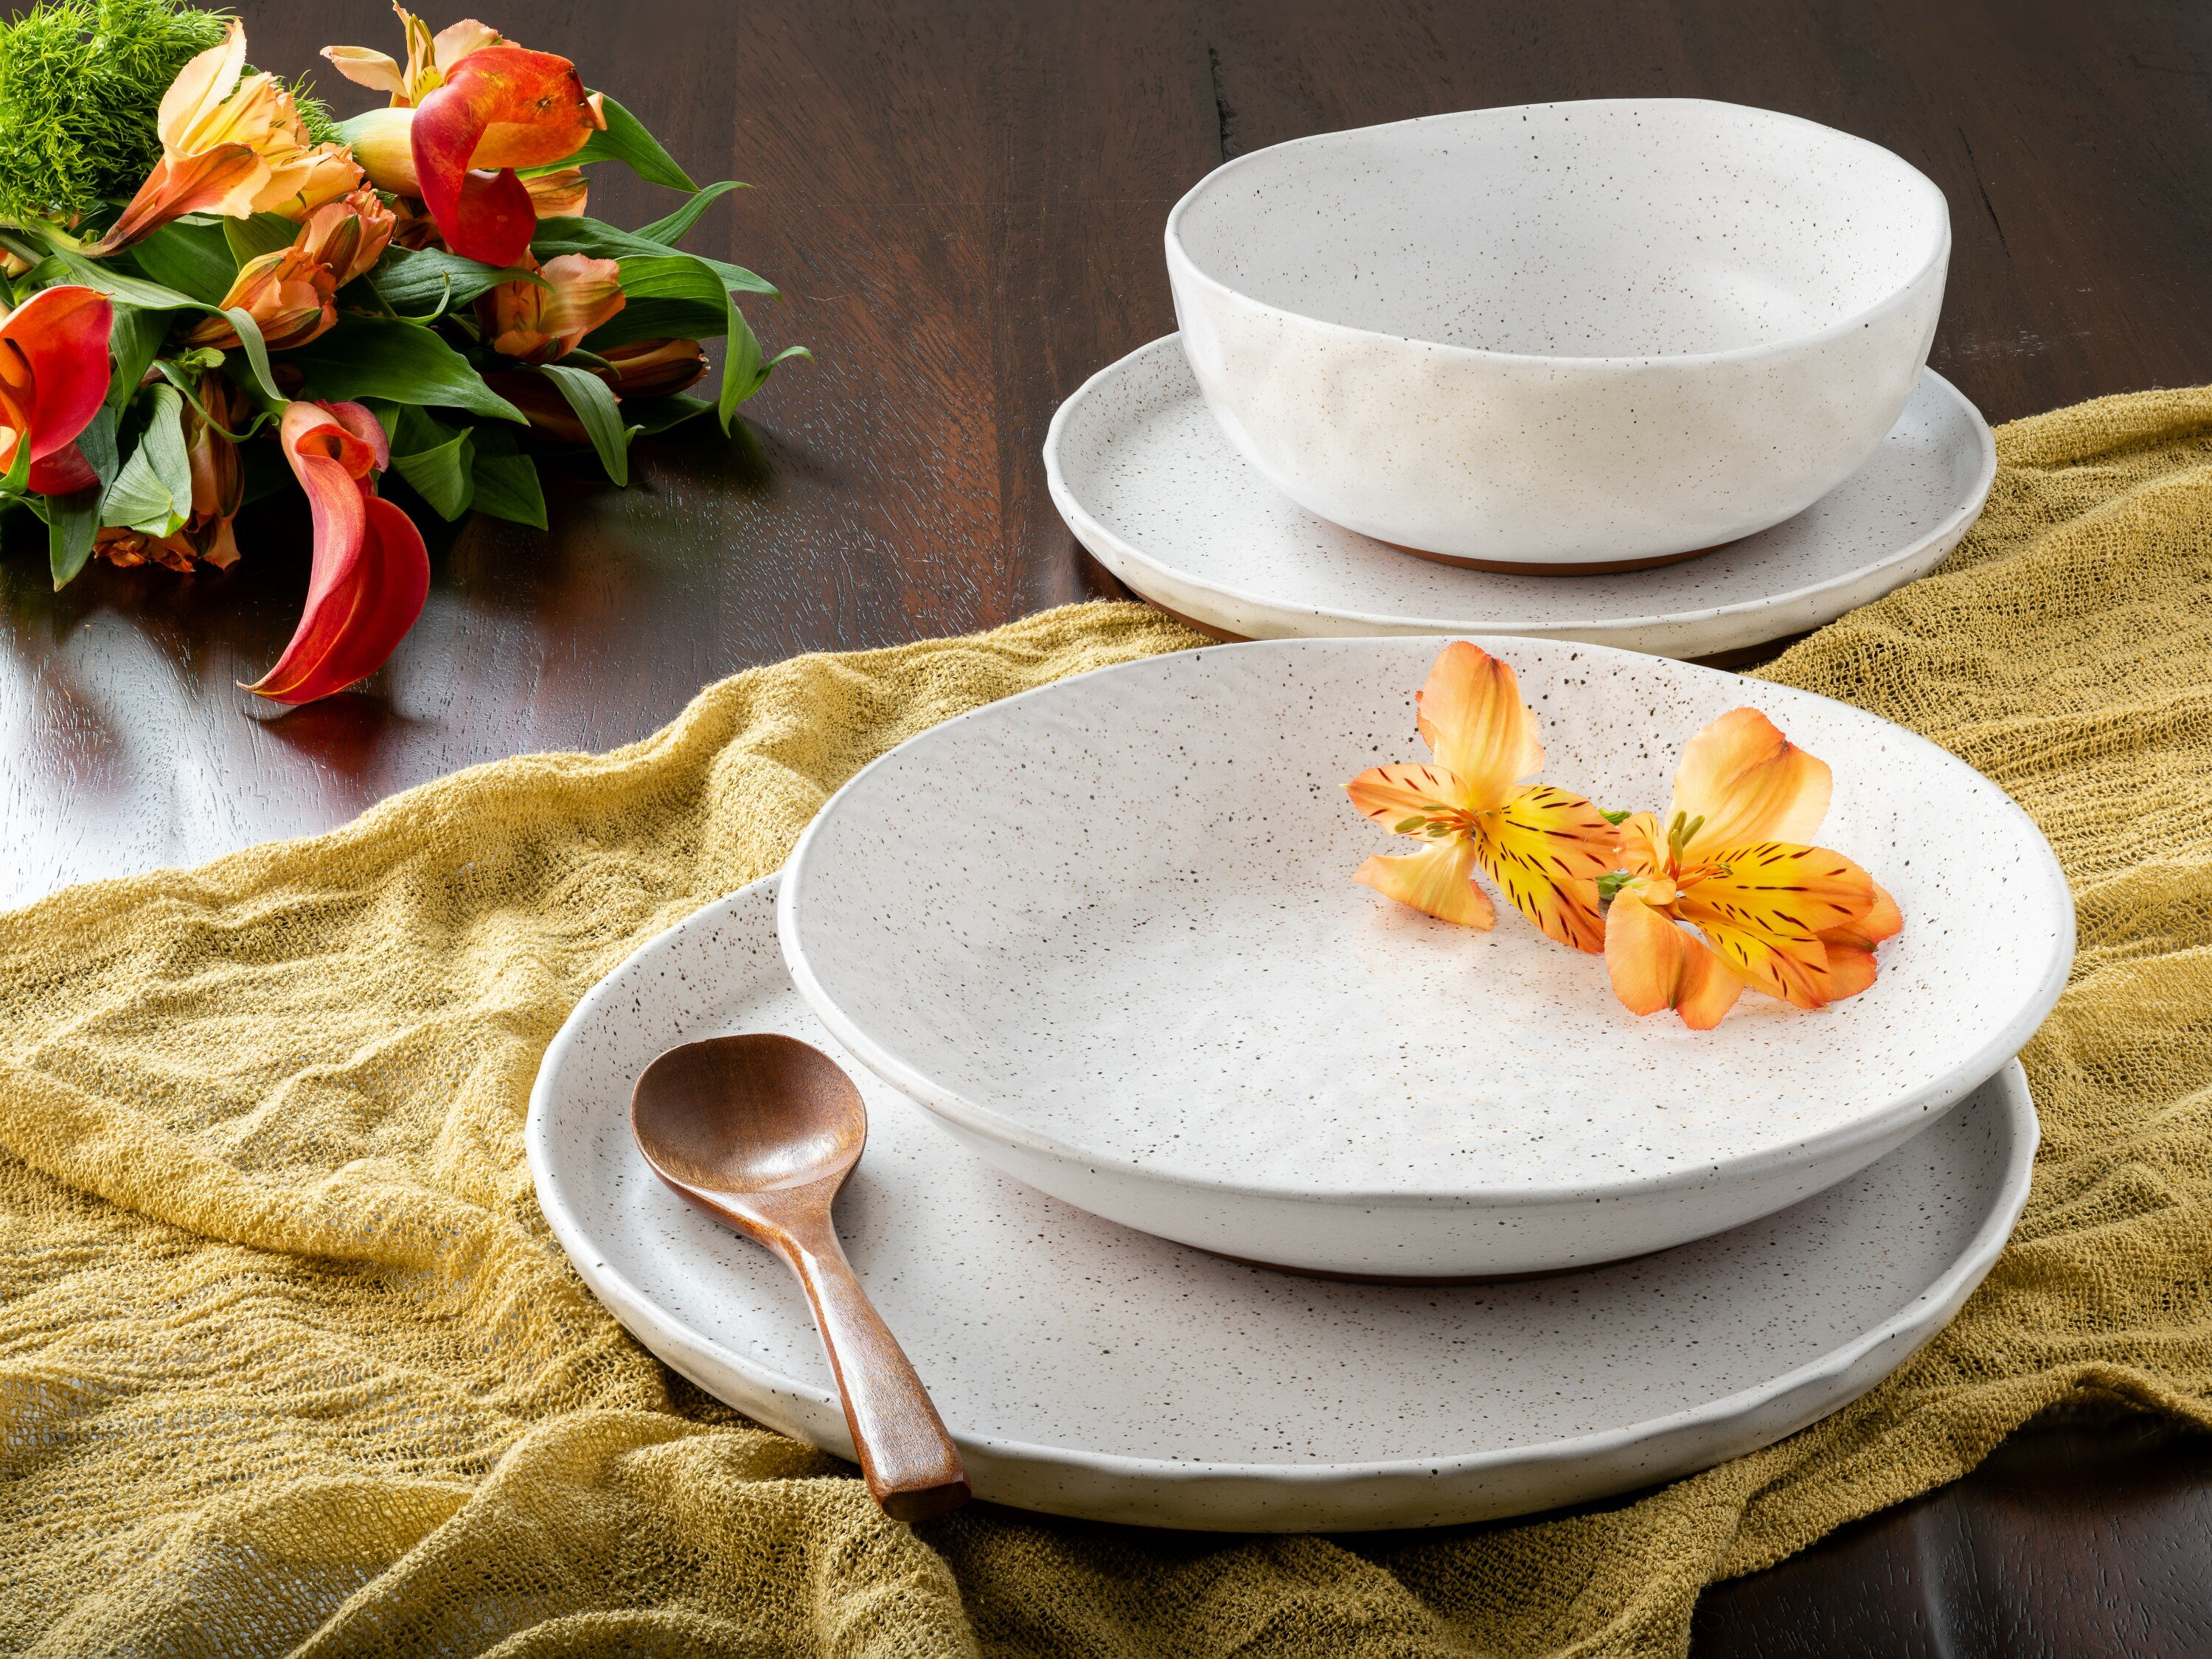 Kaya 16 Piece Dinnerware Set, Service For 4 Intended For Recent Kaya 3 Piece Dining Sets (Image 8 of 20)